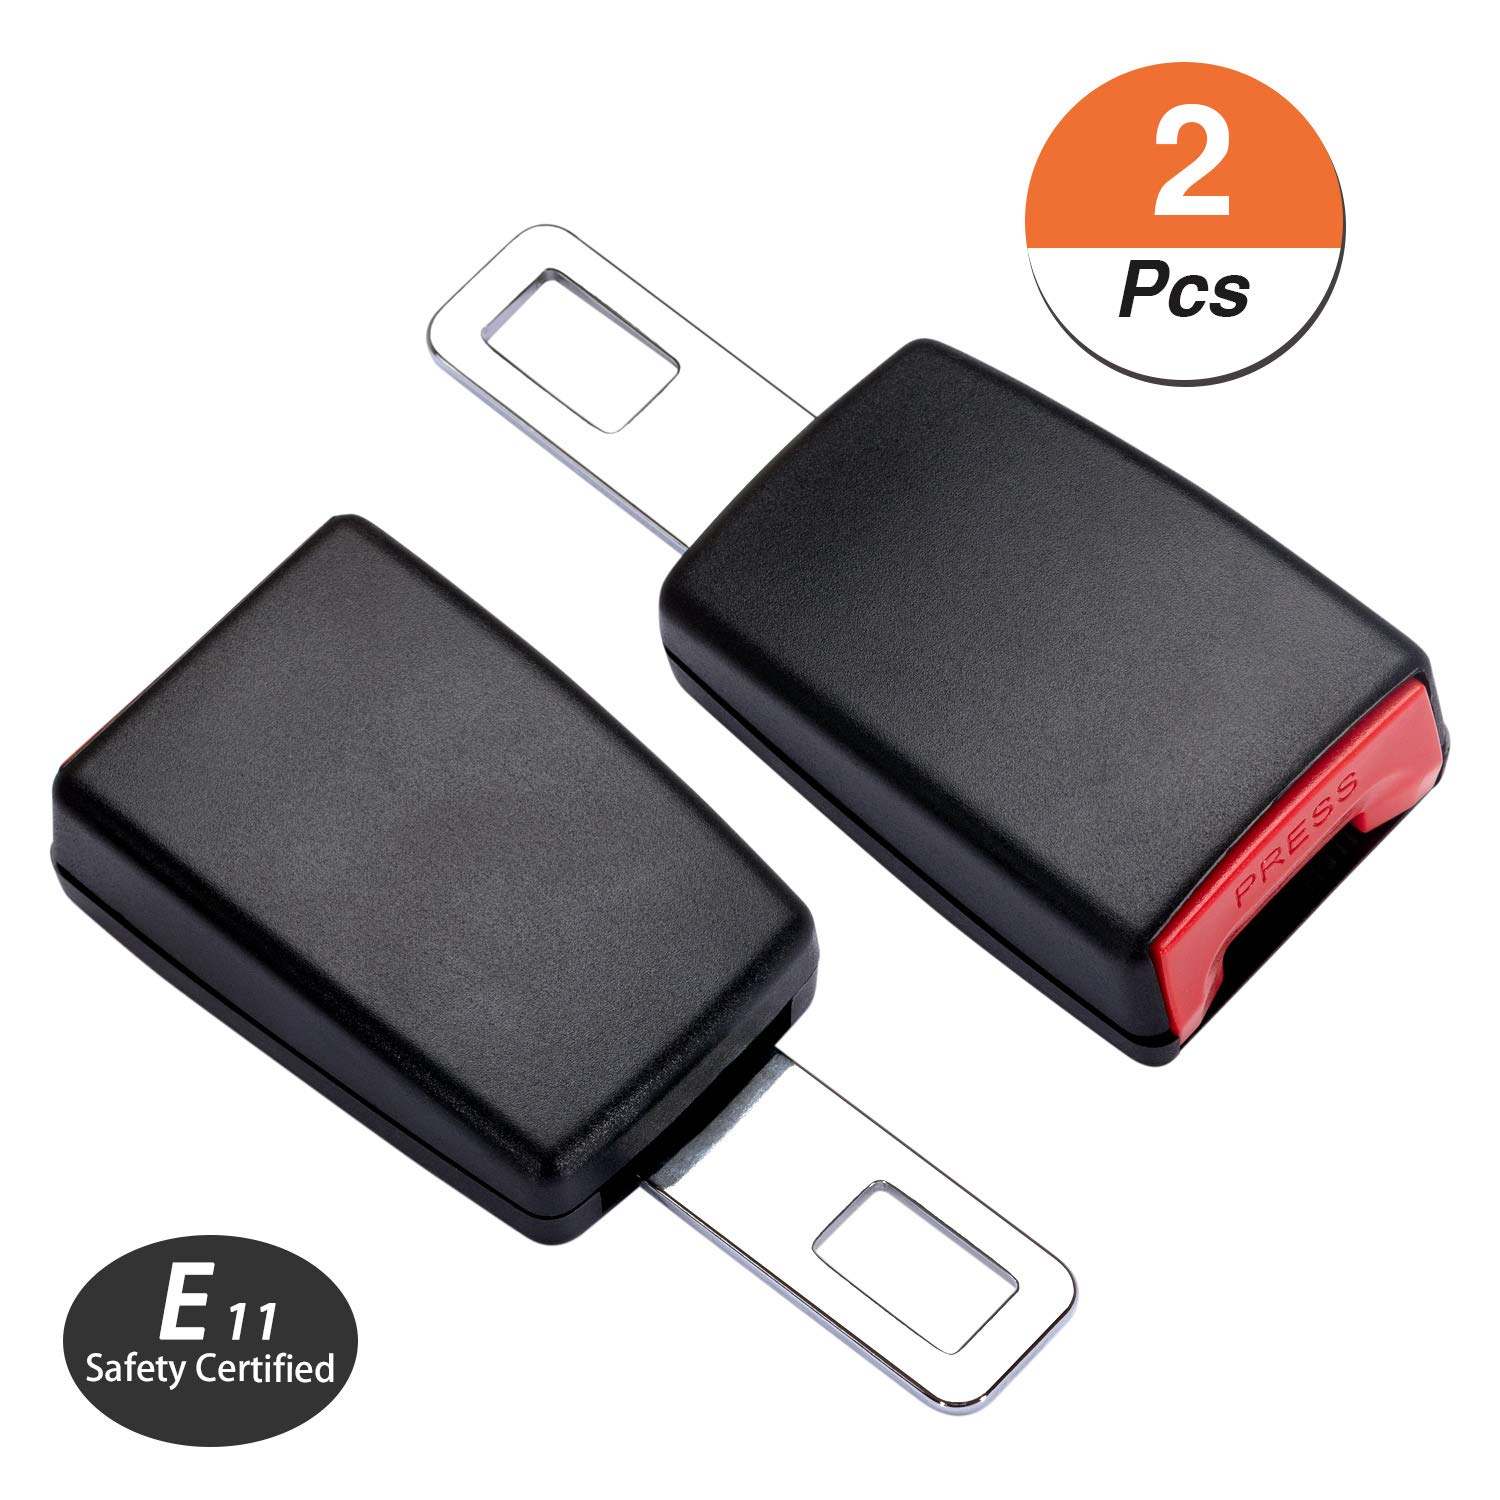 DYKEISS 2 Pack Safety Certified Universal Extension Buckle Accessory for Obese Fits Most Trucks Minivans SUV Pregnant Women Regular Belt Extender